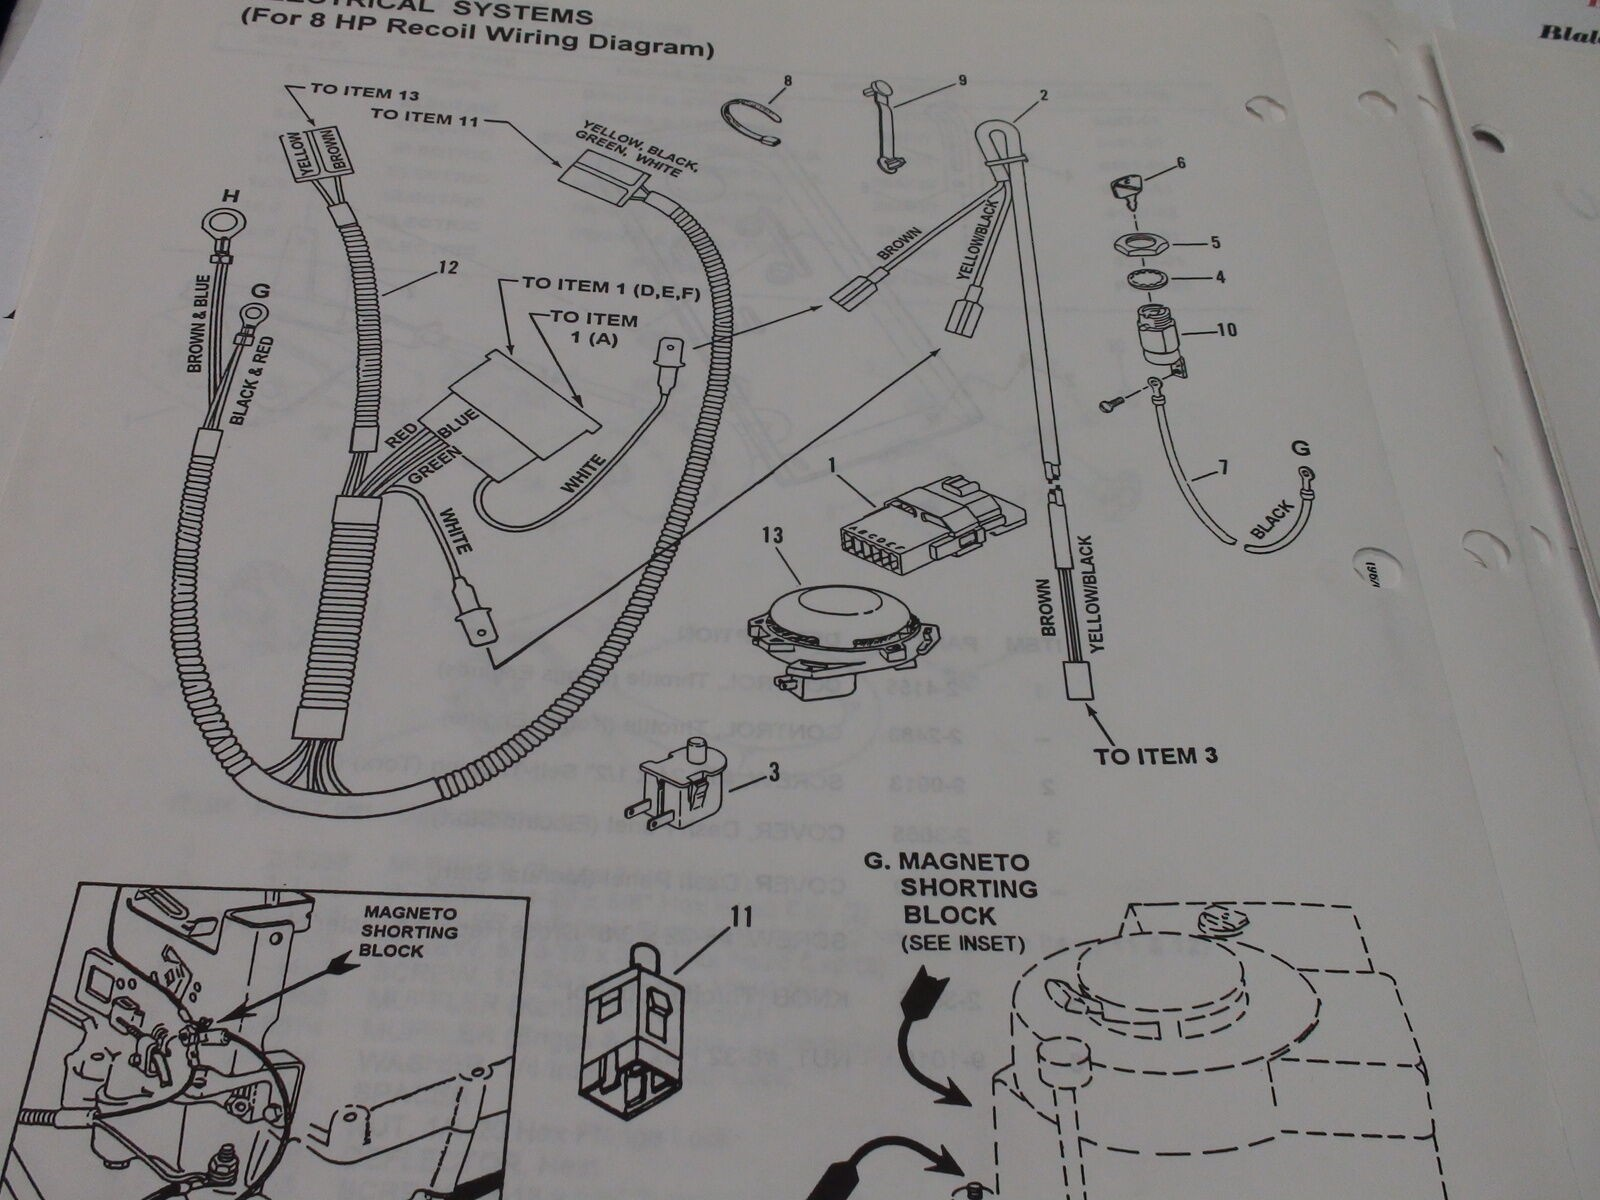 Small Engine Parts Diagram Snapper Series 16 Rear Engine Rider Parts Manual for Sale Of Small Engine Parts Diagram Looking for Snapper Model Wm B Rear Engine Riding Mower Repair